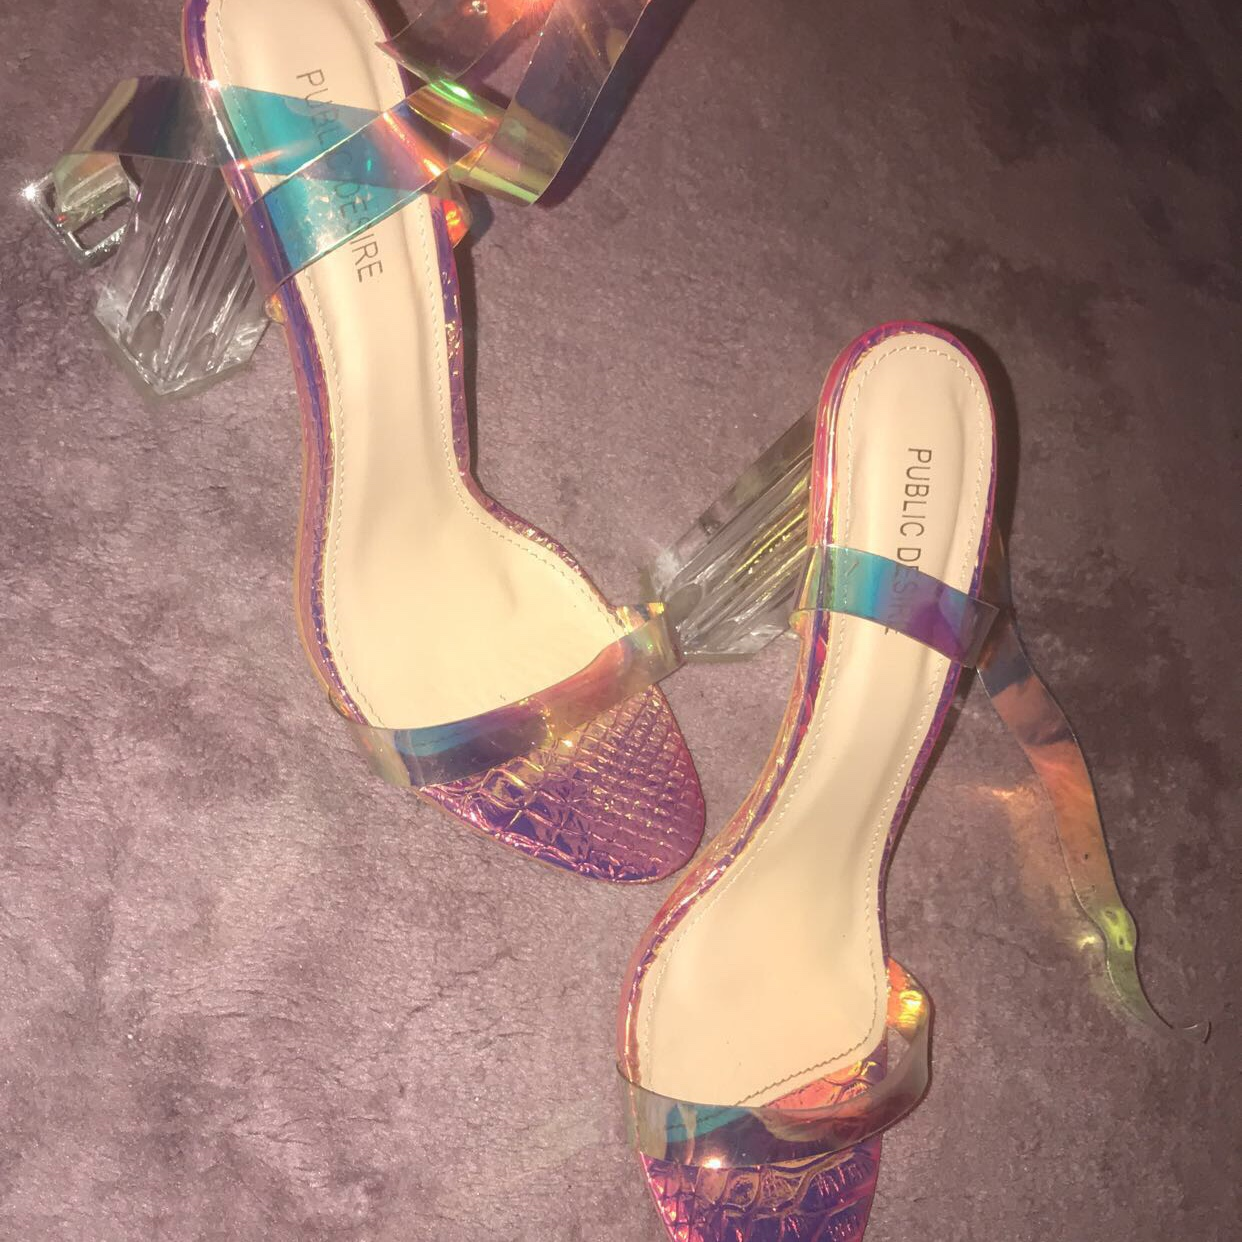 5860326ec9a ALIA STRAPPY PERSPEX HIGH HEELS IN IRIDESCENT WITH... - Depop